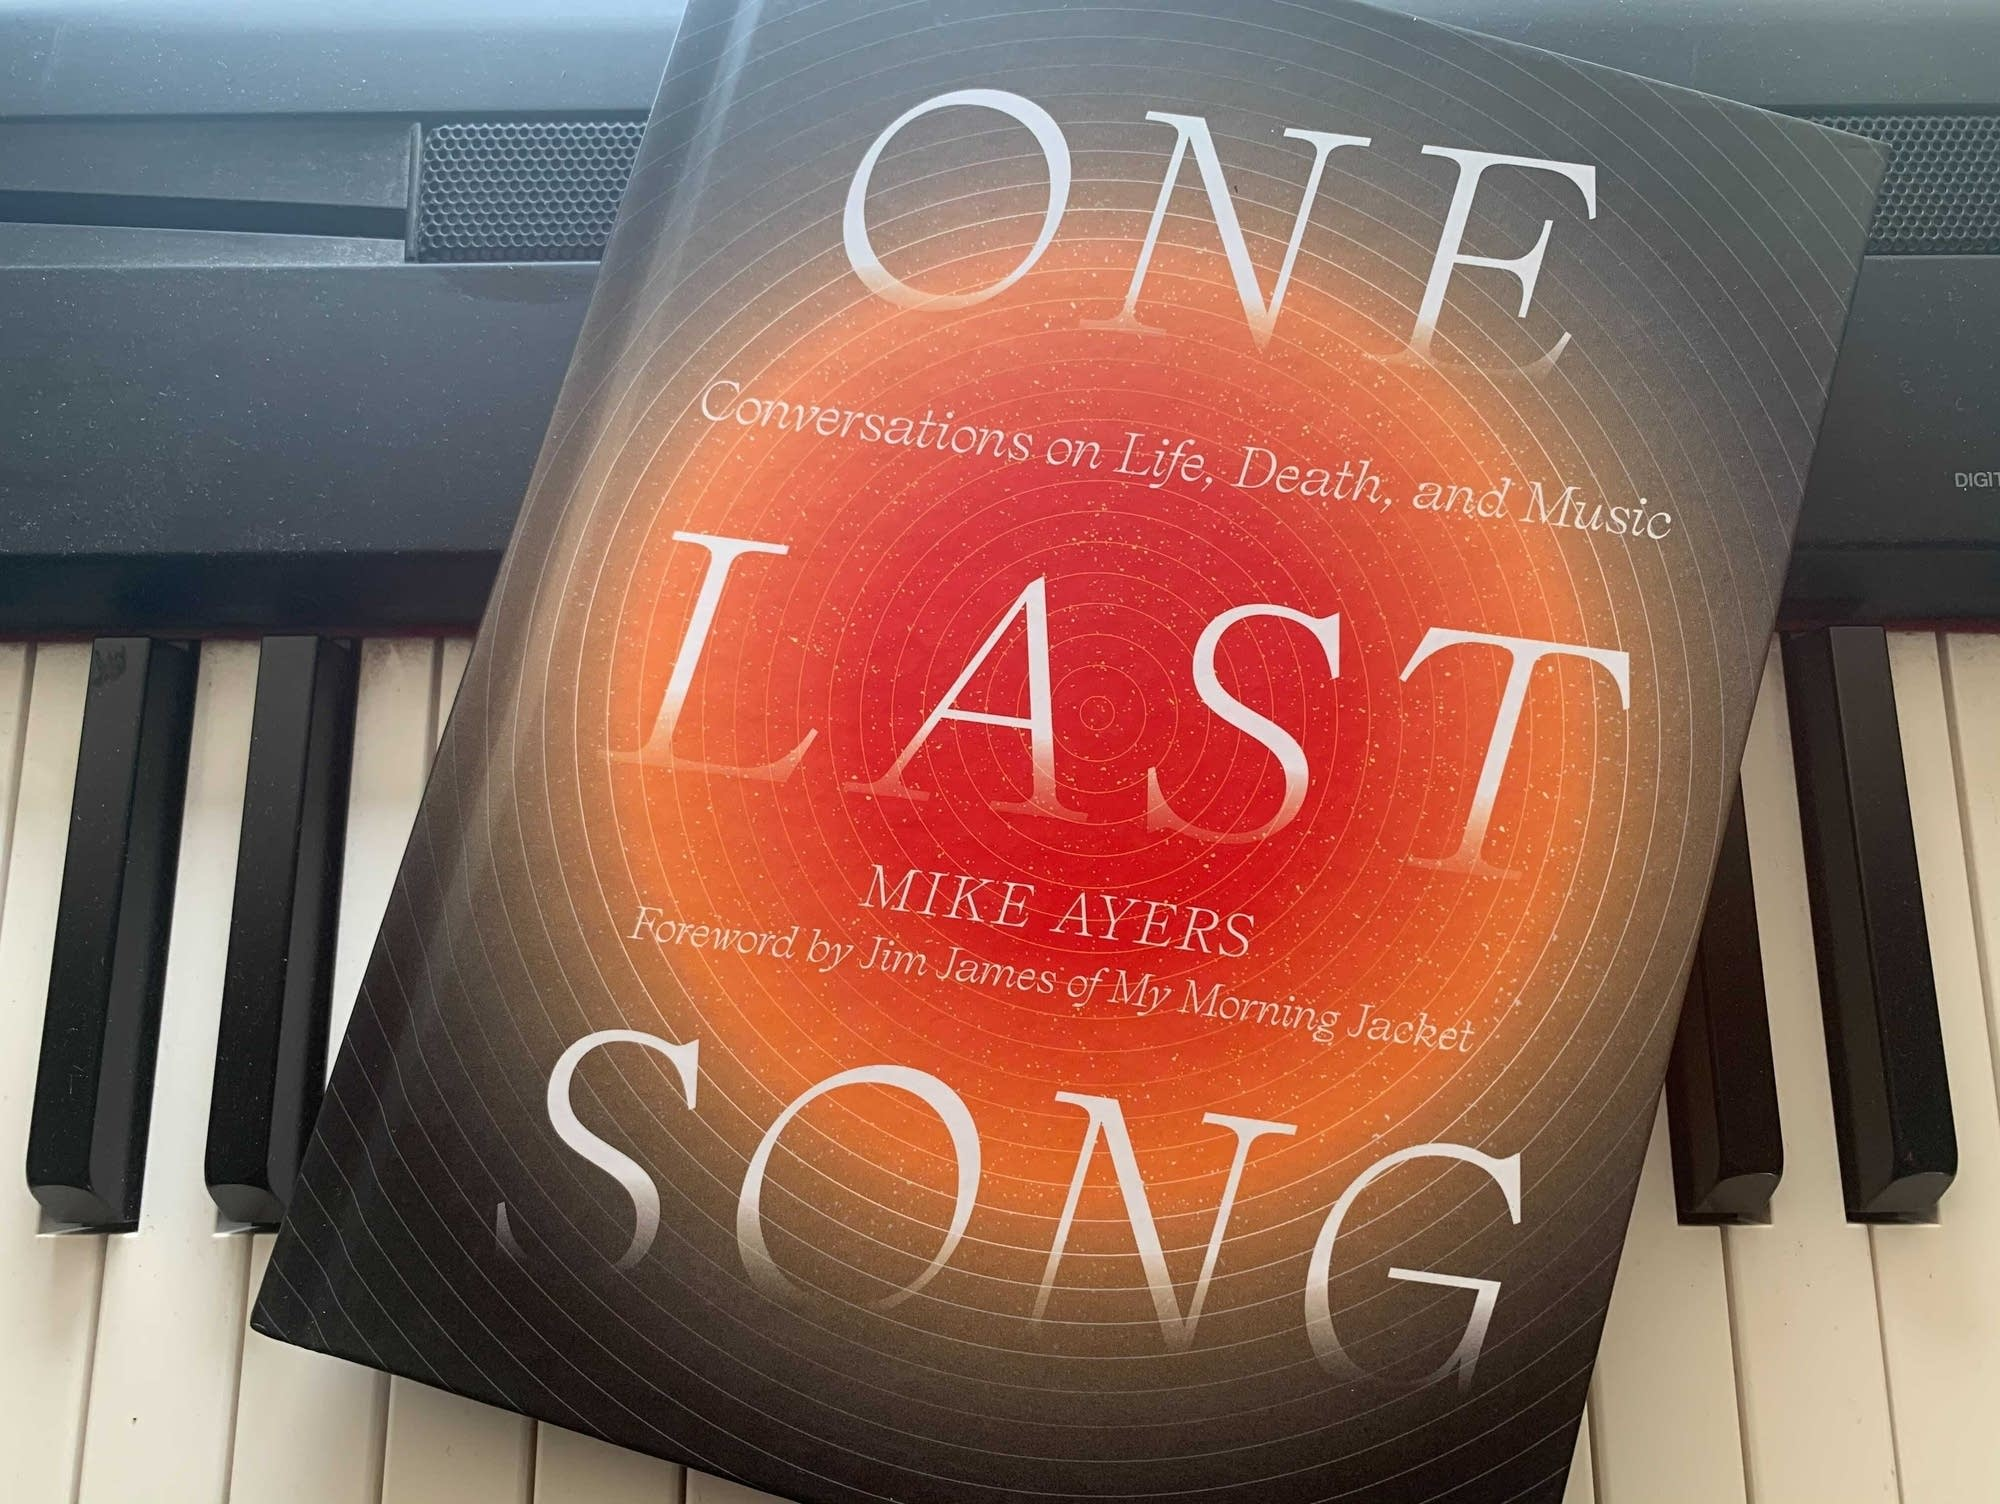 Mike Ayers's 'One Last Song.'